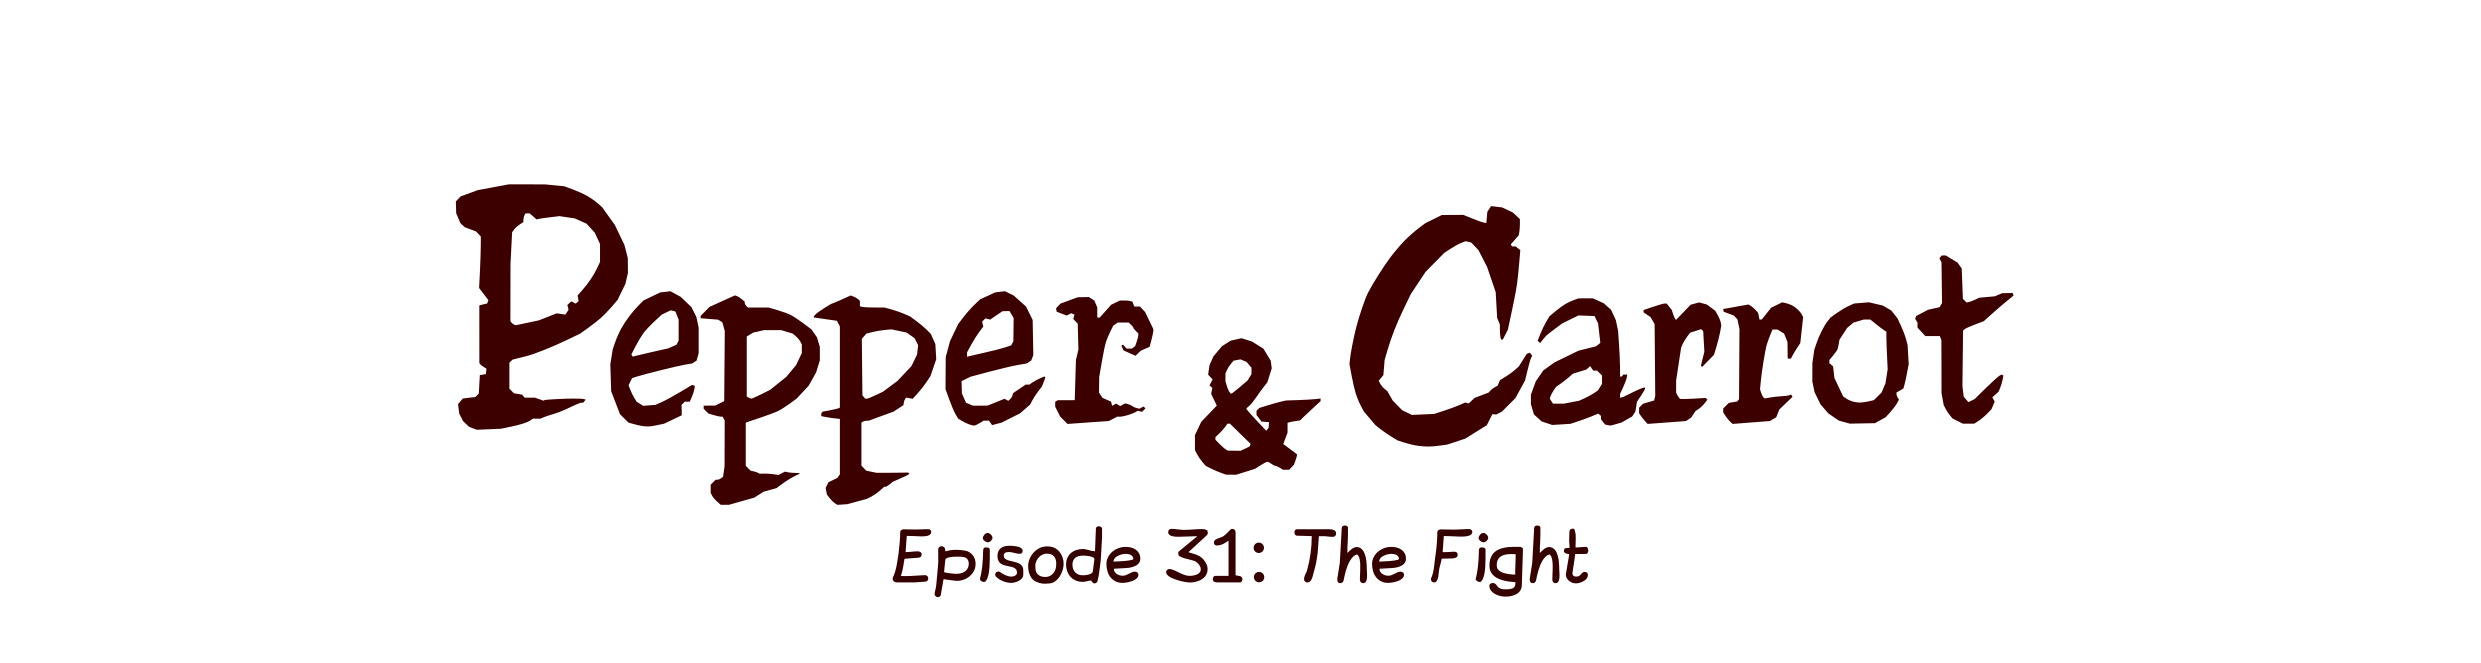 Episode 31: The Fight